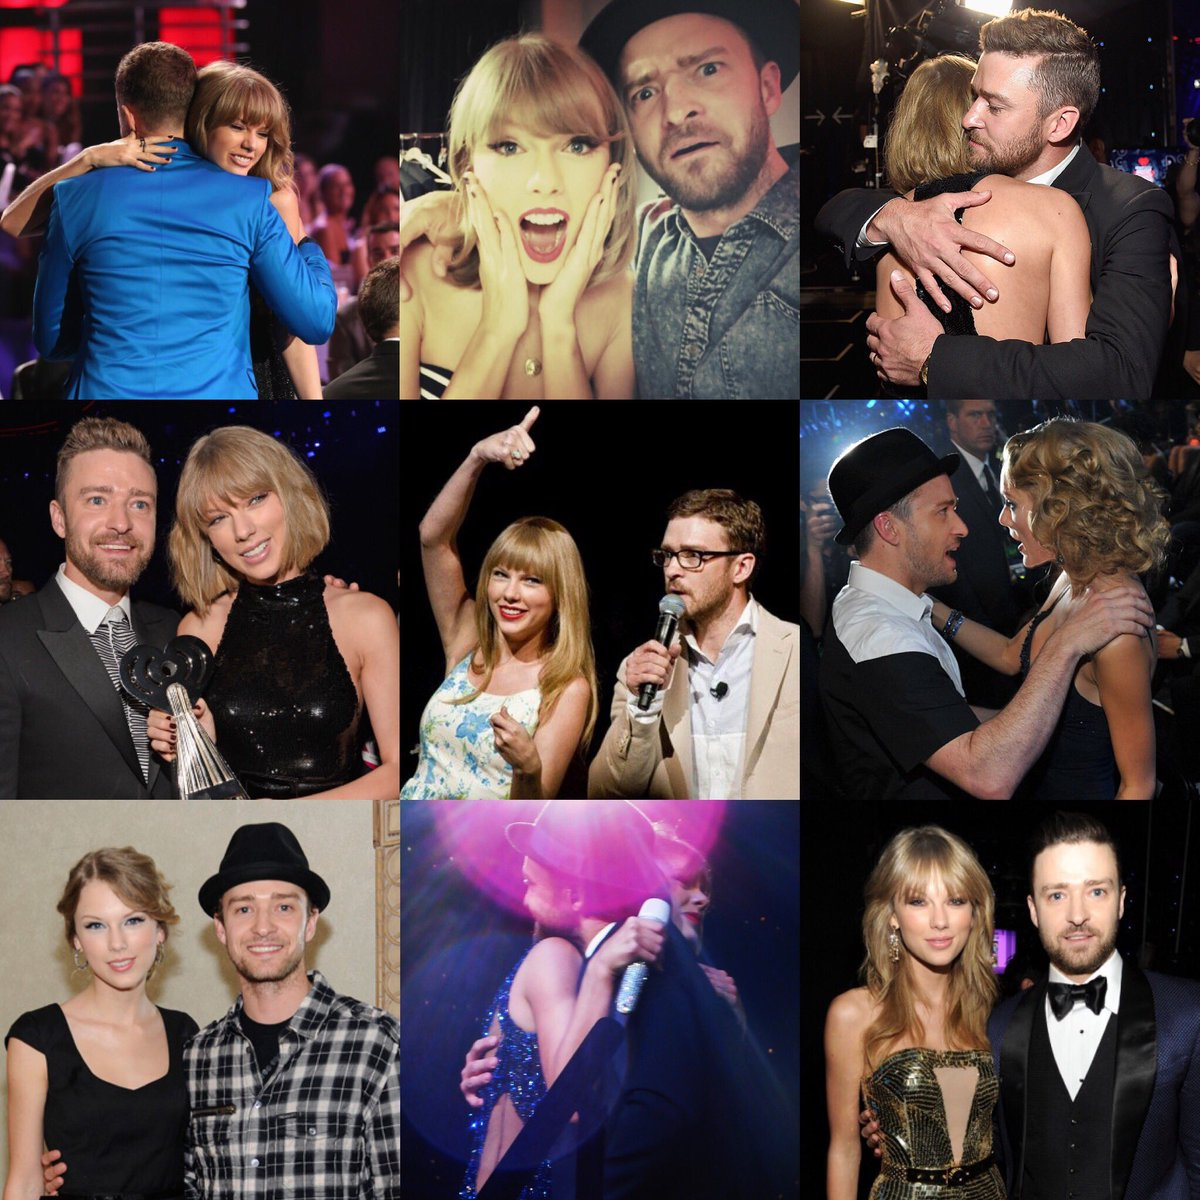 Taylor Swift News On Twitter Happy Birthday Justin Timberlake Thanks For Being A Great Inspiration And Friend To Taylor